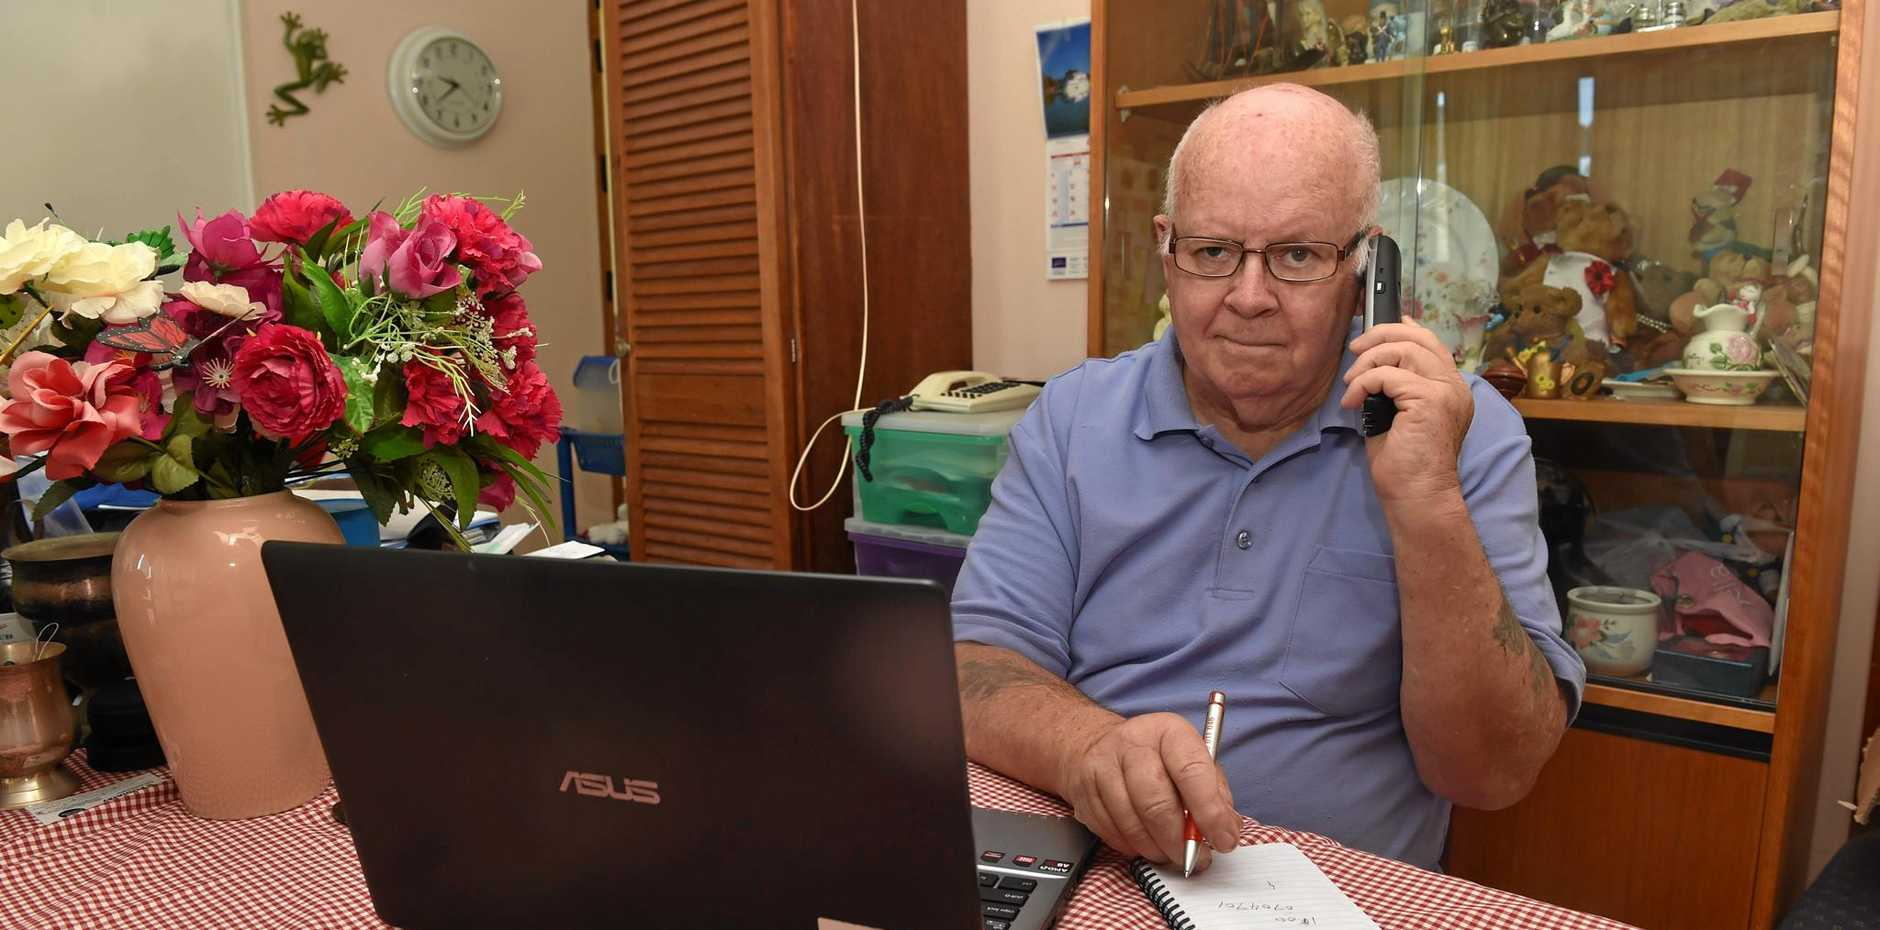 SCAMMED: Jim Shaw has lost thousands to a scammer claiming to be from the NBN.